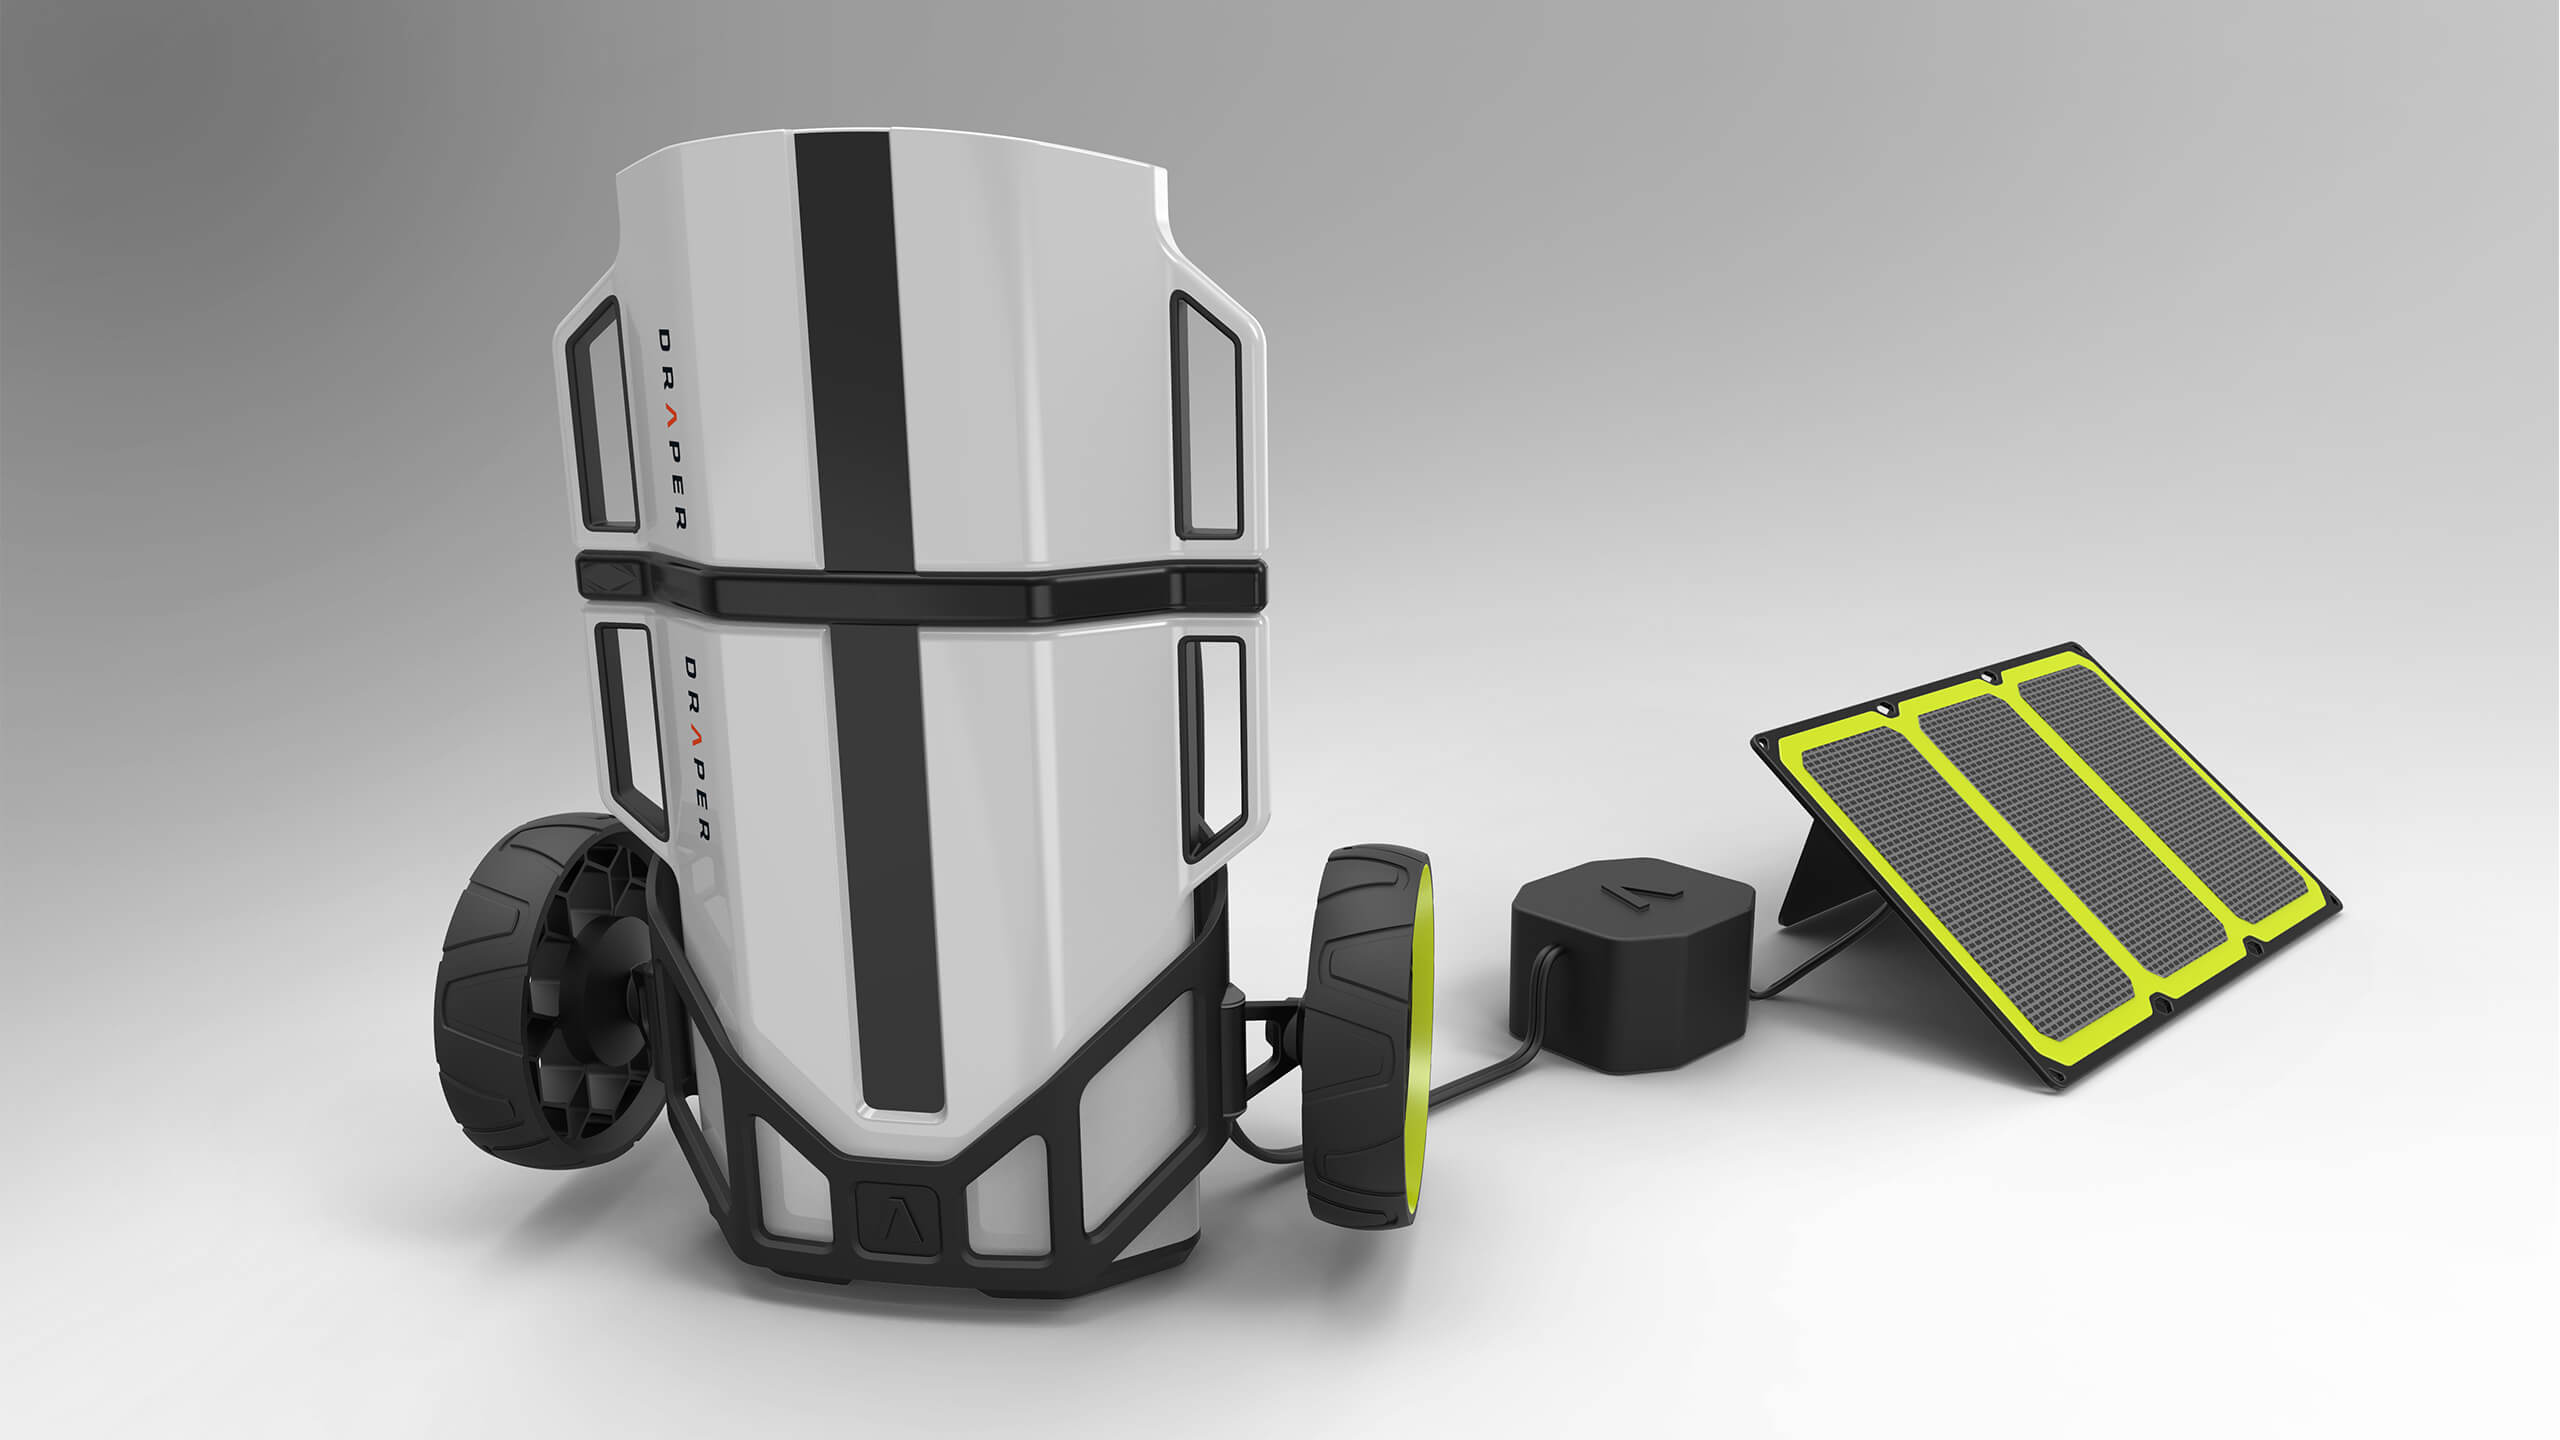 3D CAD Render by Sprout Studios of Draper Mobile Thermoelectric Refrigerator